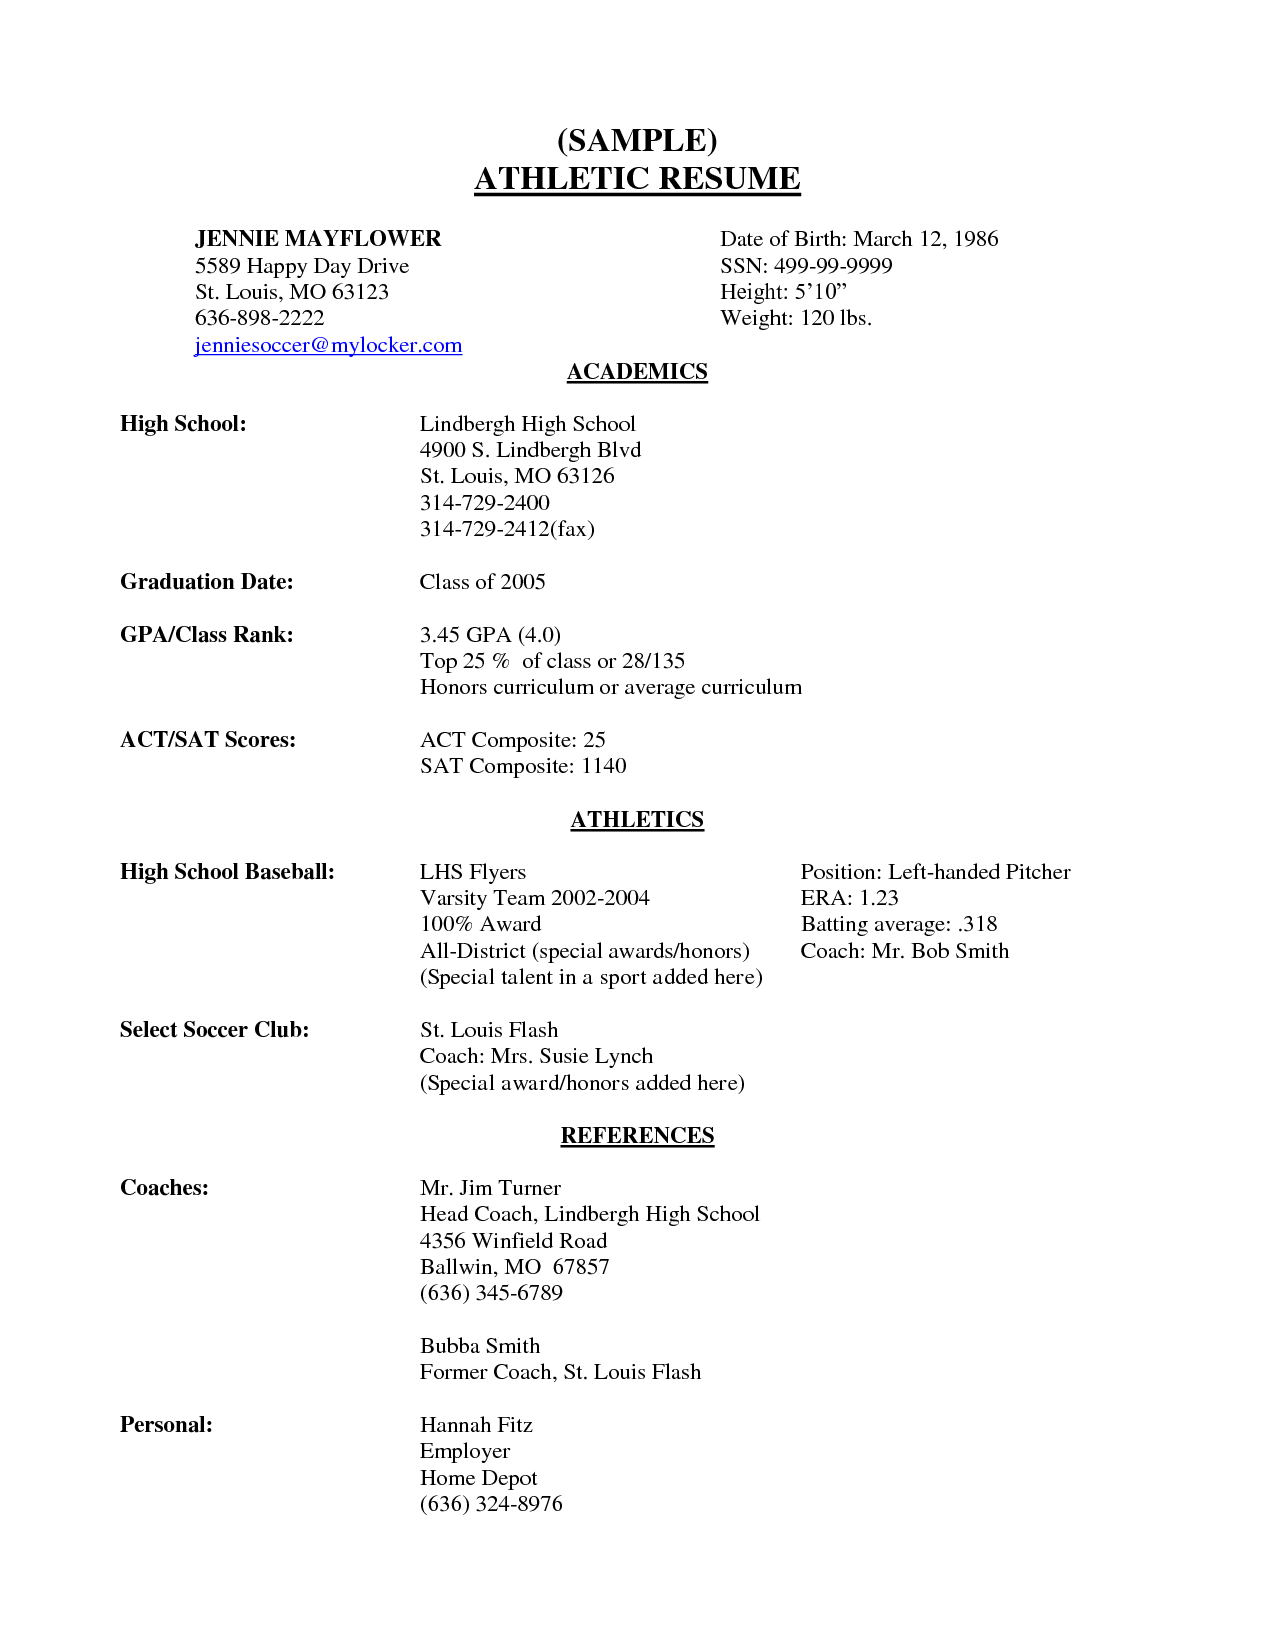 High School Resume Template Word High School Senior Resume Sample  Scope Of Work Template  Quotes